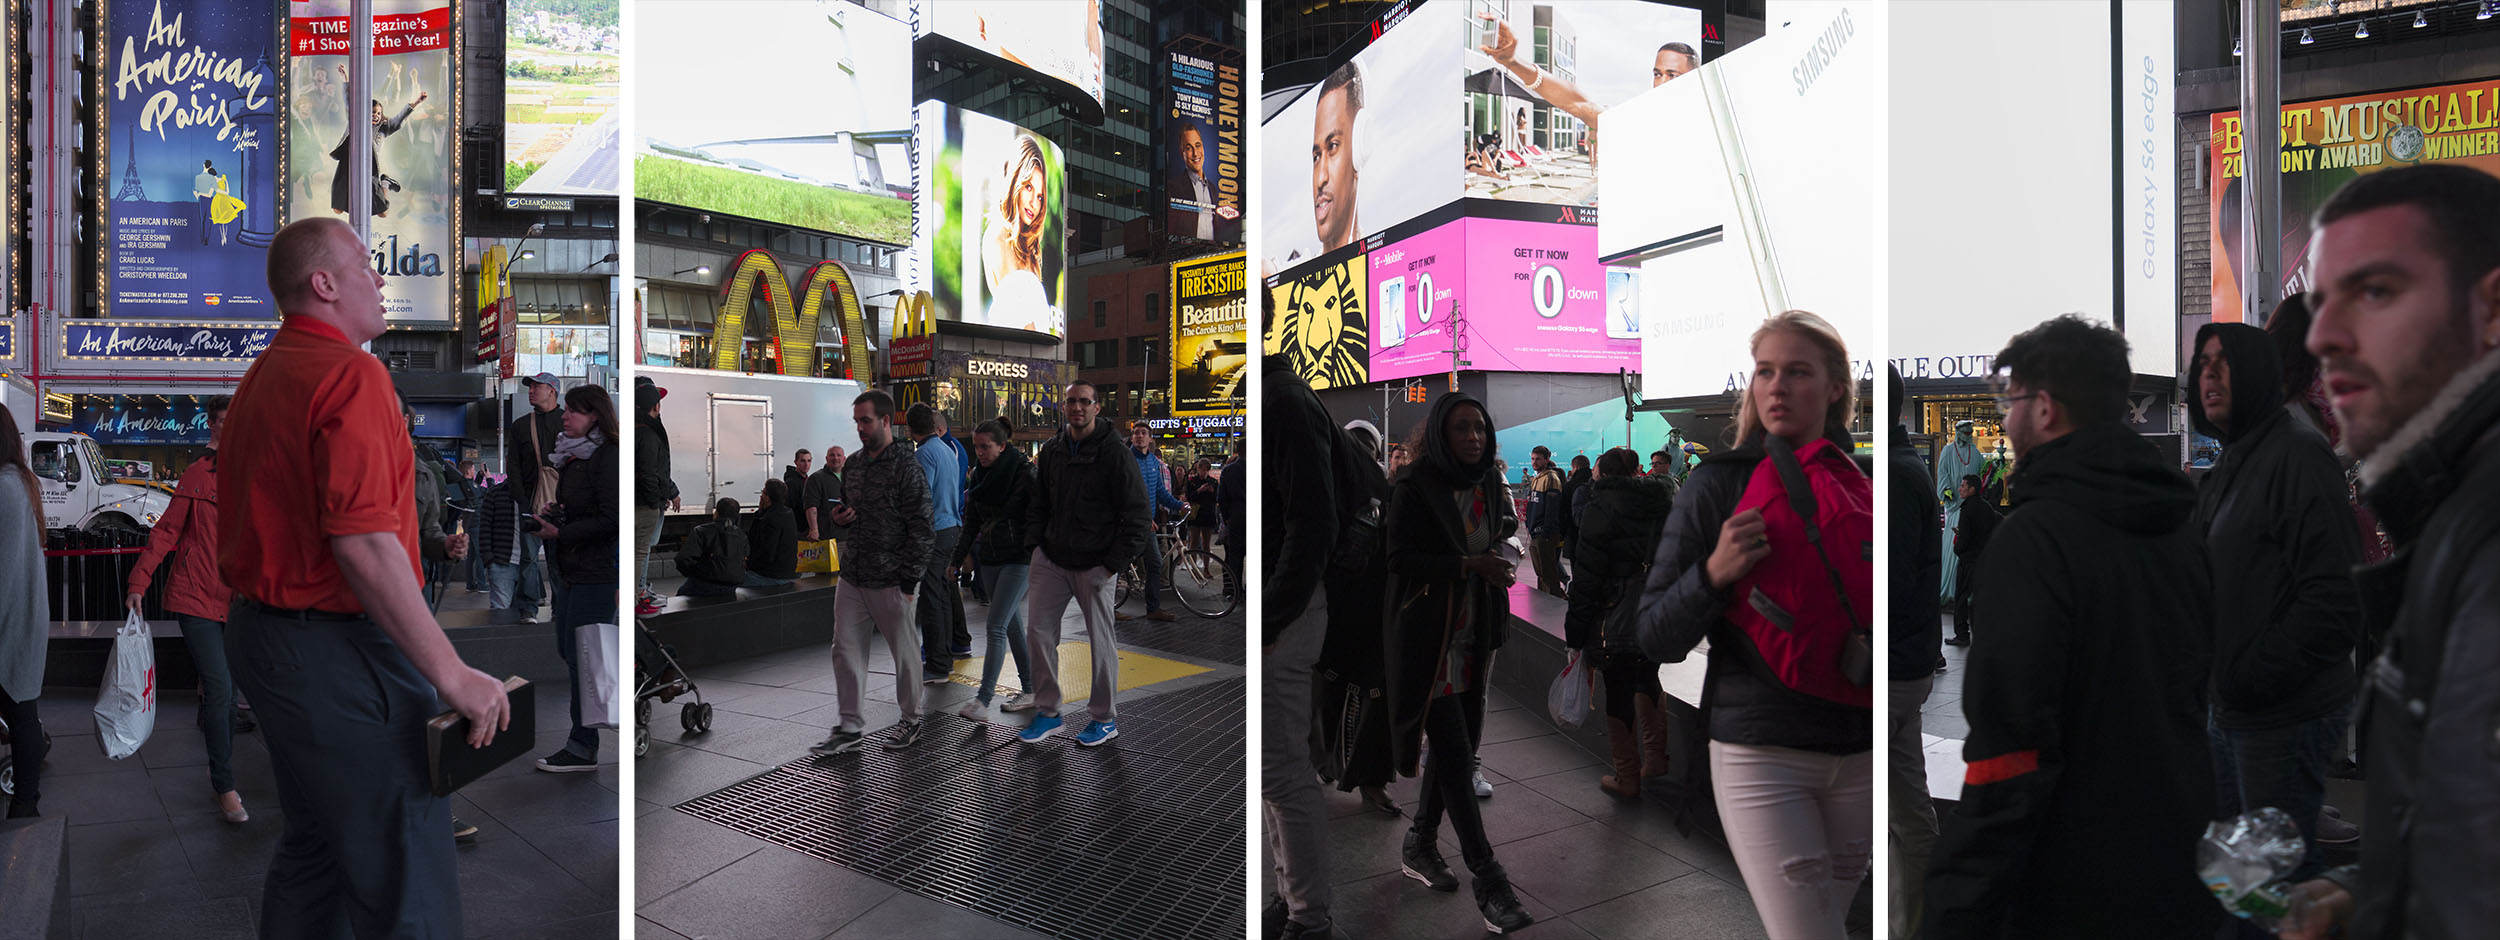 New York, Times Square, 4-19-2015, 7809-7813